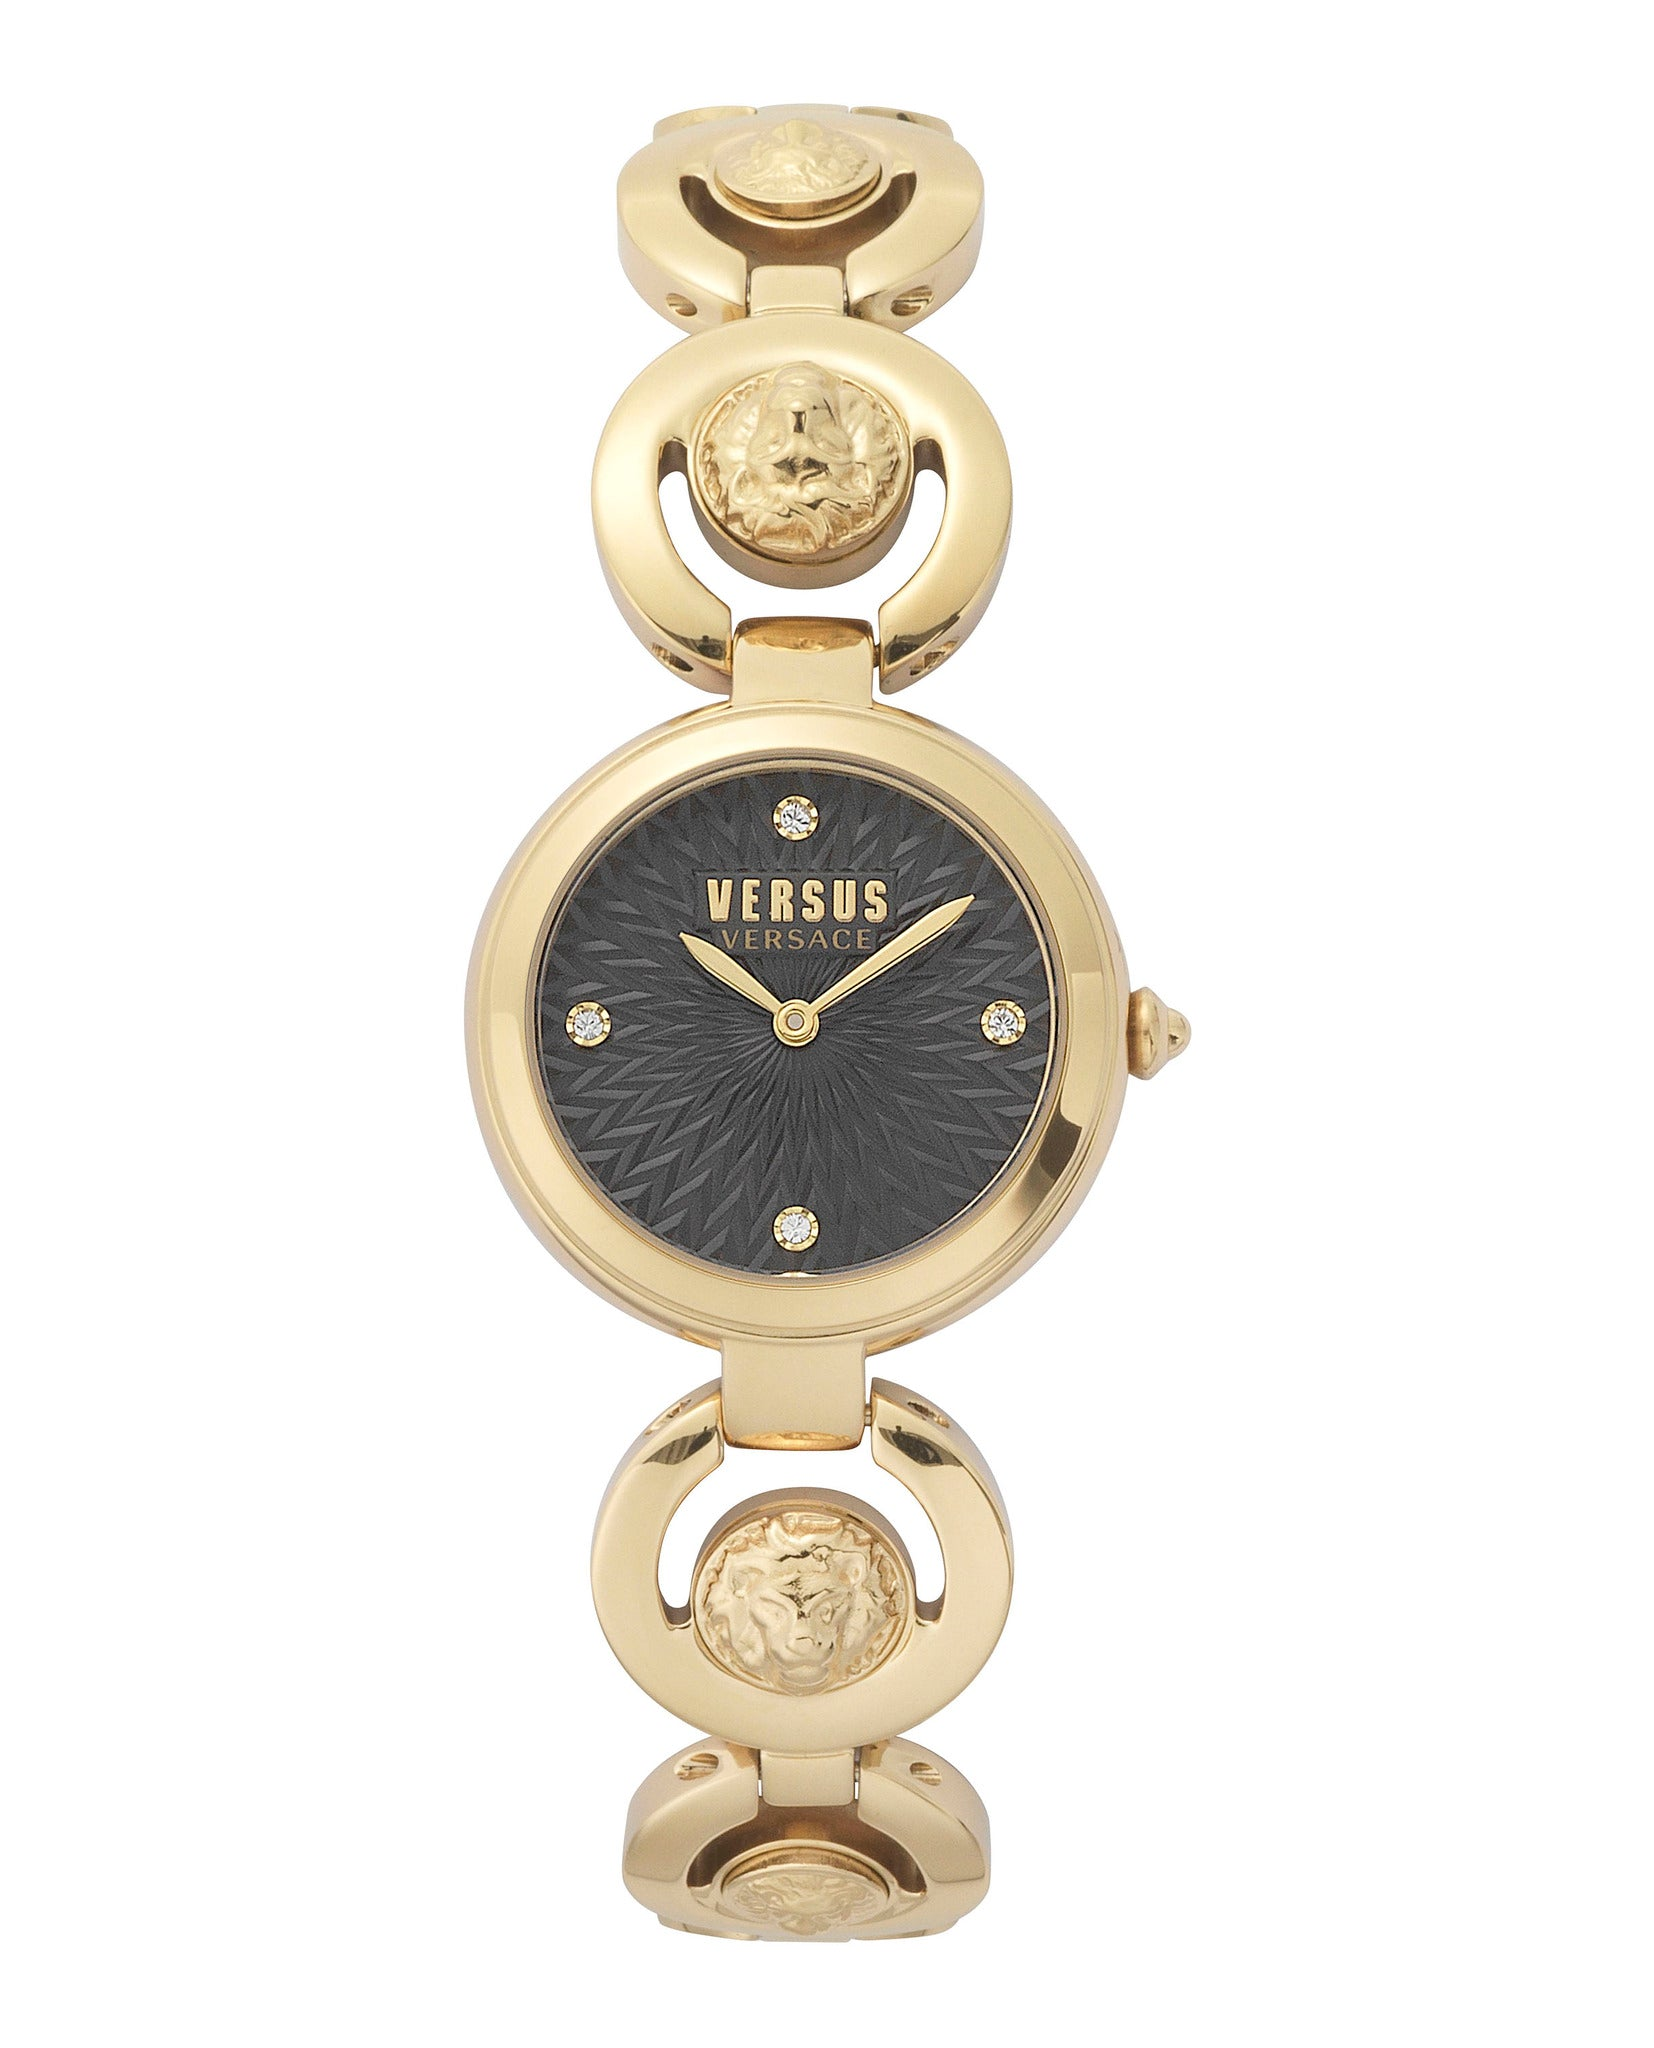 Versus Versace Peking Road Petite Watch